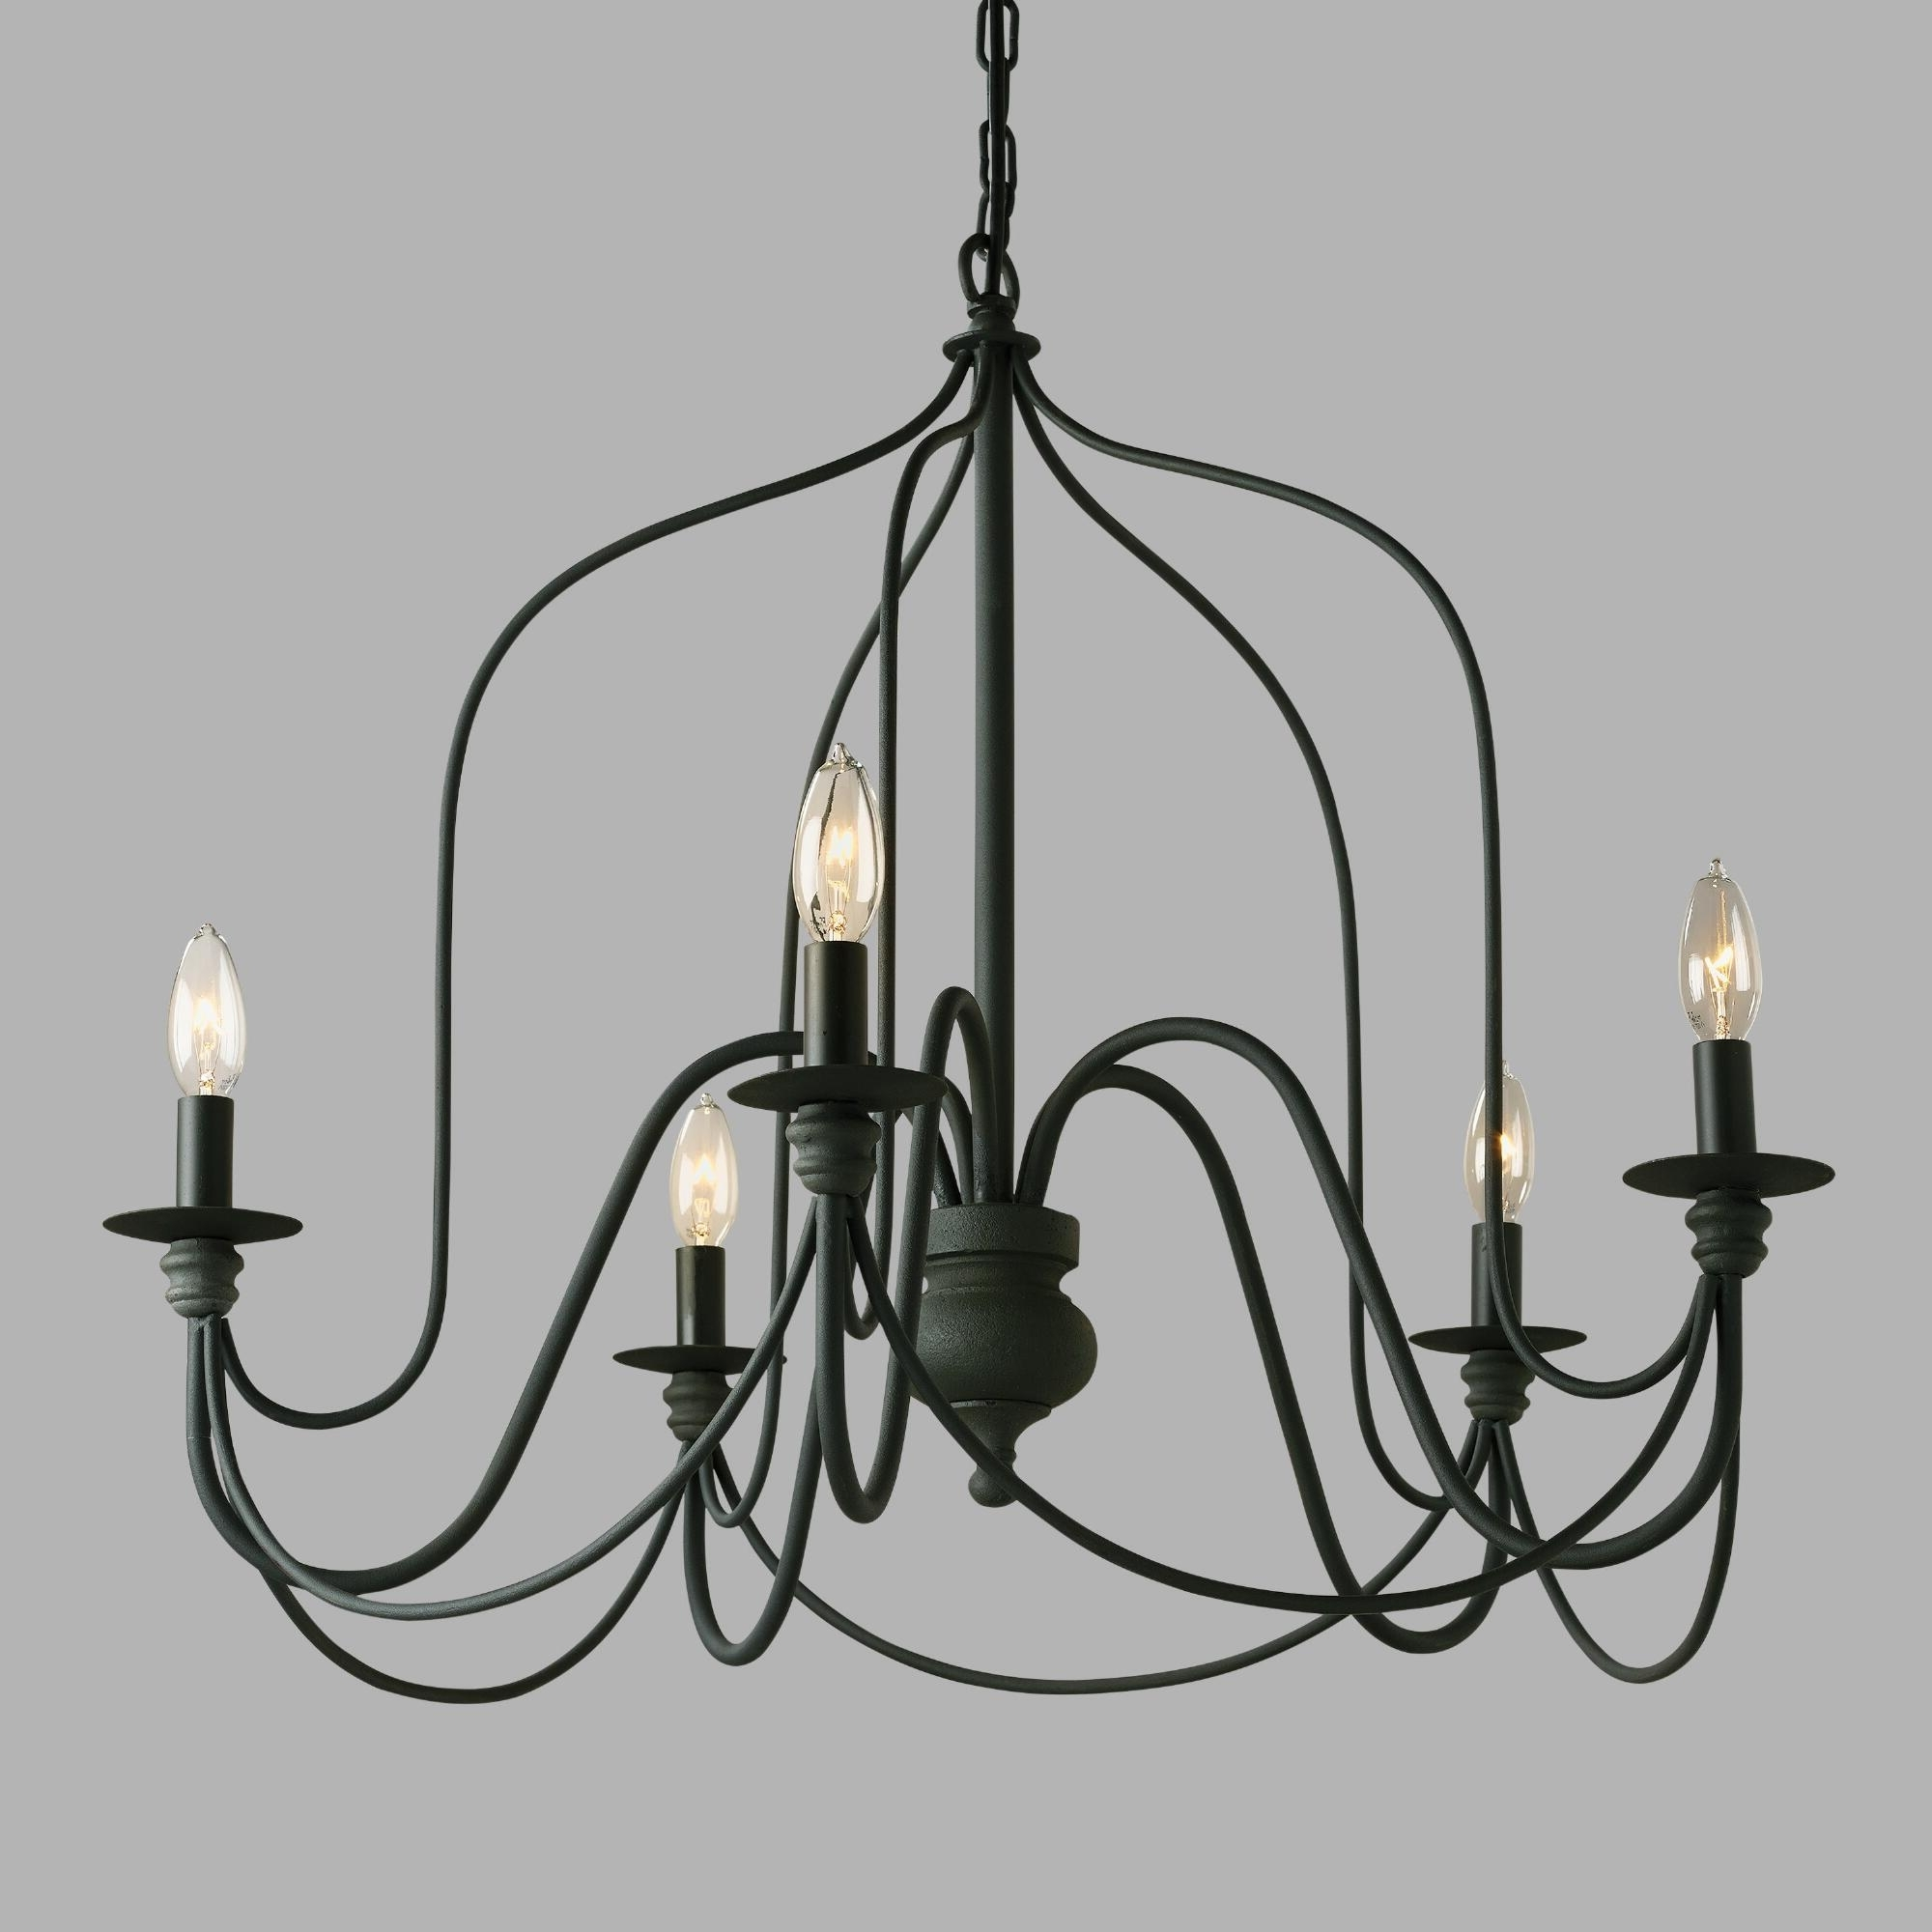 Chandeliers Design : Magnificent Decorative Chandelier Rustic Intended For Well Known Small Rustic Chandeliers (View 5 of 20)